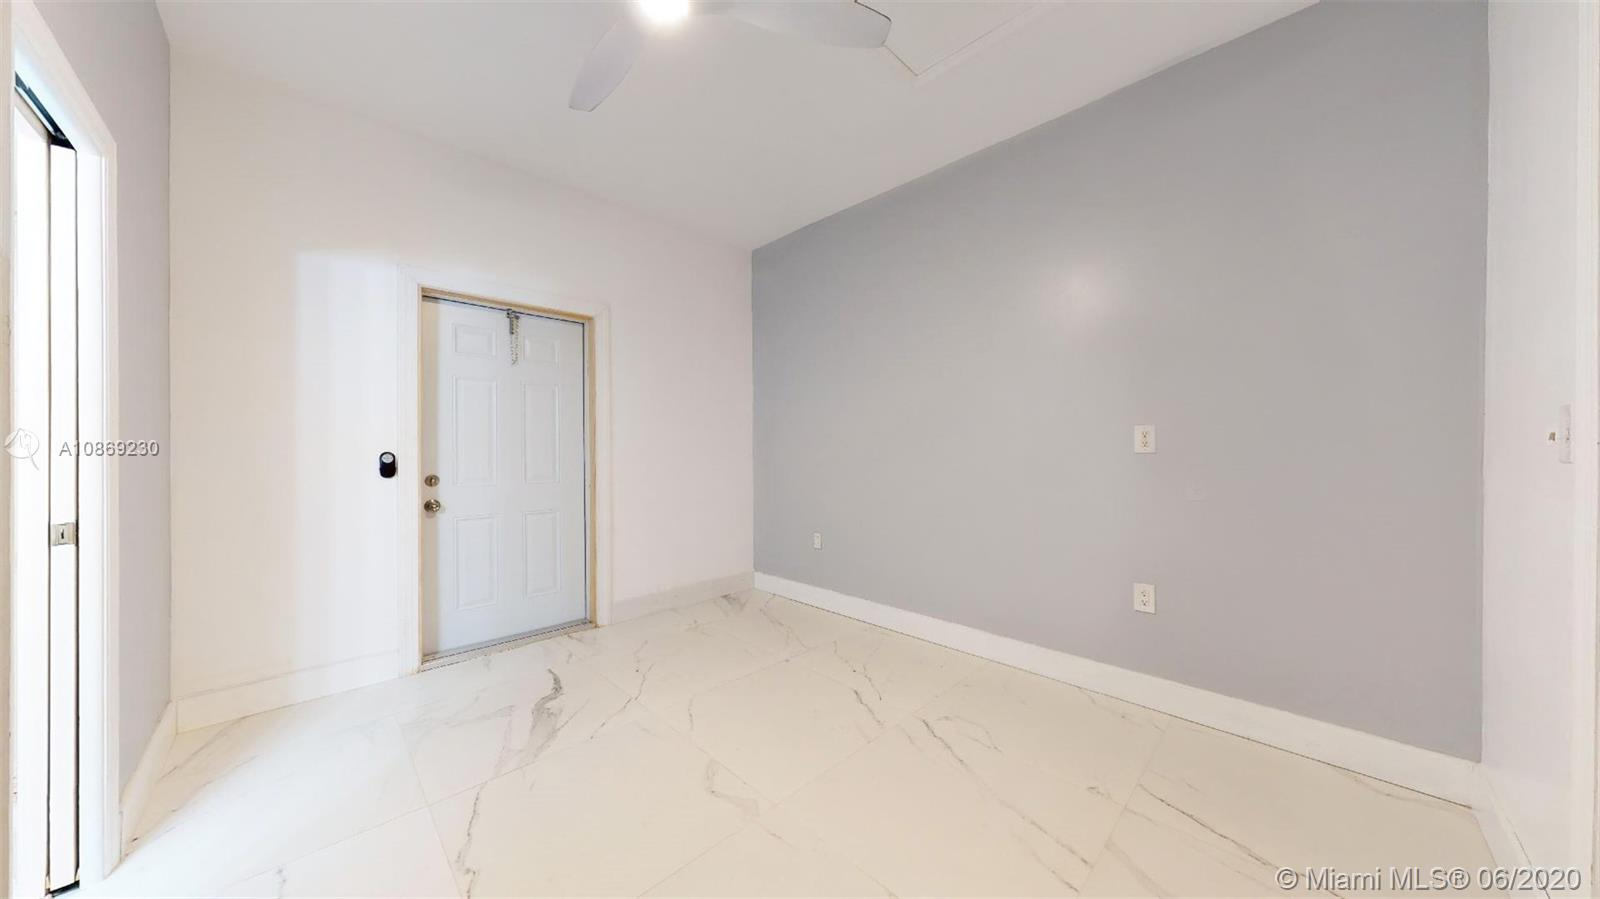 Beautiful modern studio efficiency in great neighborhood. Private entrance on side of home. Spacious bedroom with elegant bathroom and kitchen. Includes electricity, water, wifi included, 1 parking space. Looking for 1 adult, Maximum 2, No pets, Washer & Dryer. Conveniently located, walking distance from West Kendall Baptist Hospital, shopping ceters, and major restaurants. Won't last, contact today!